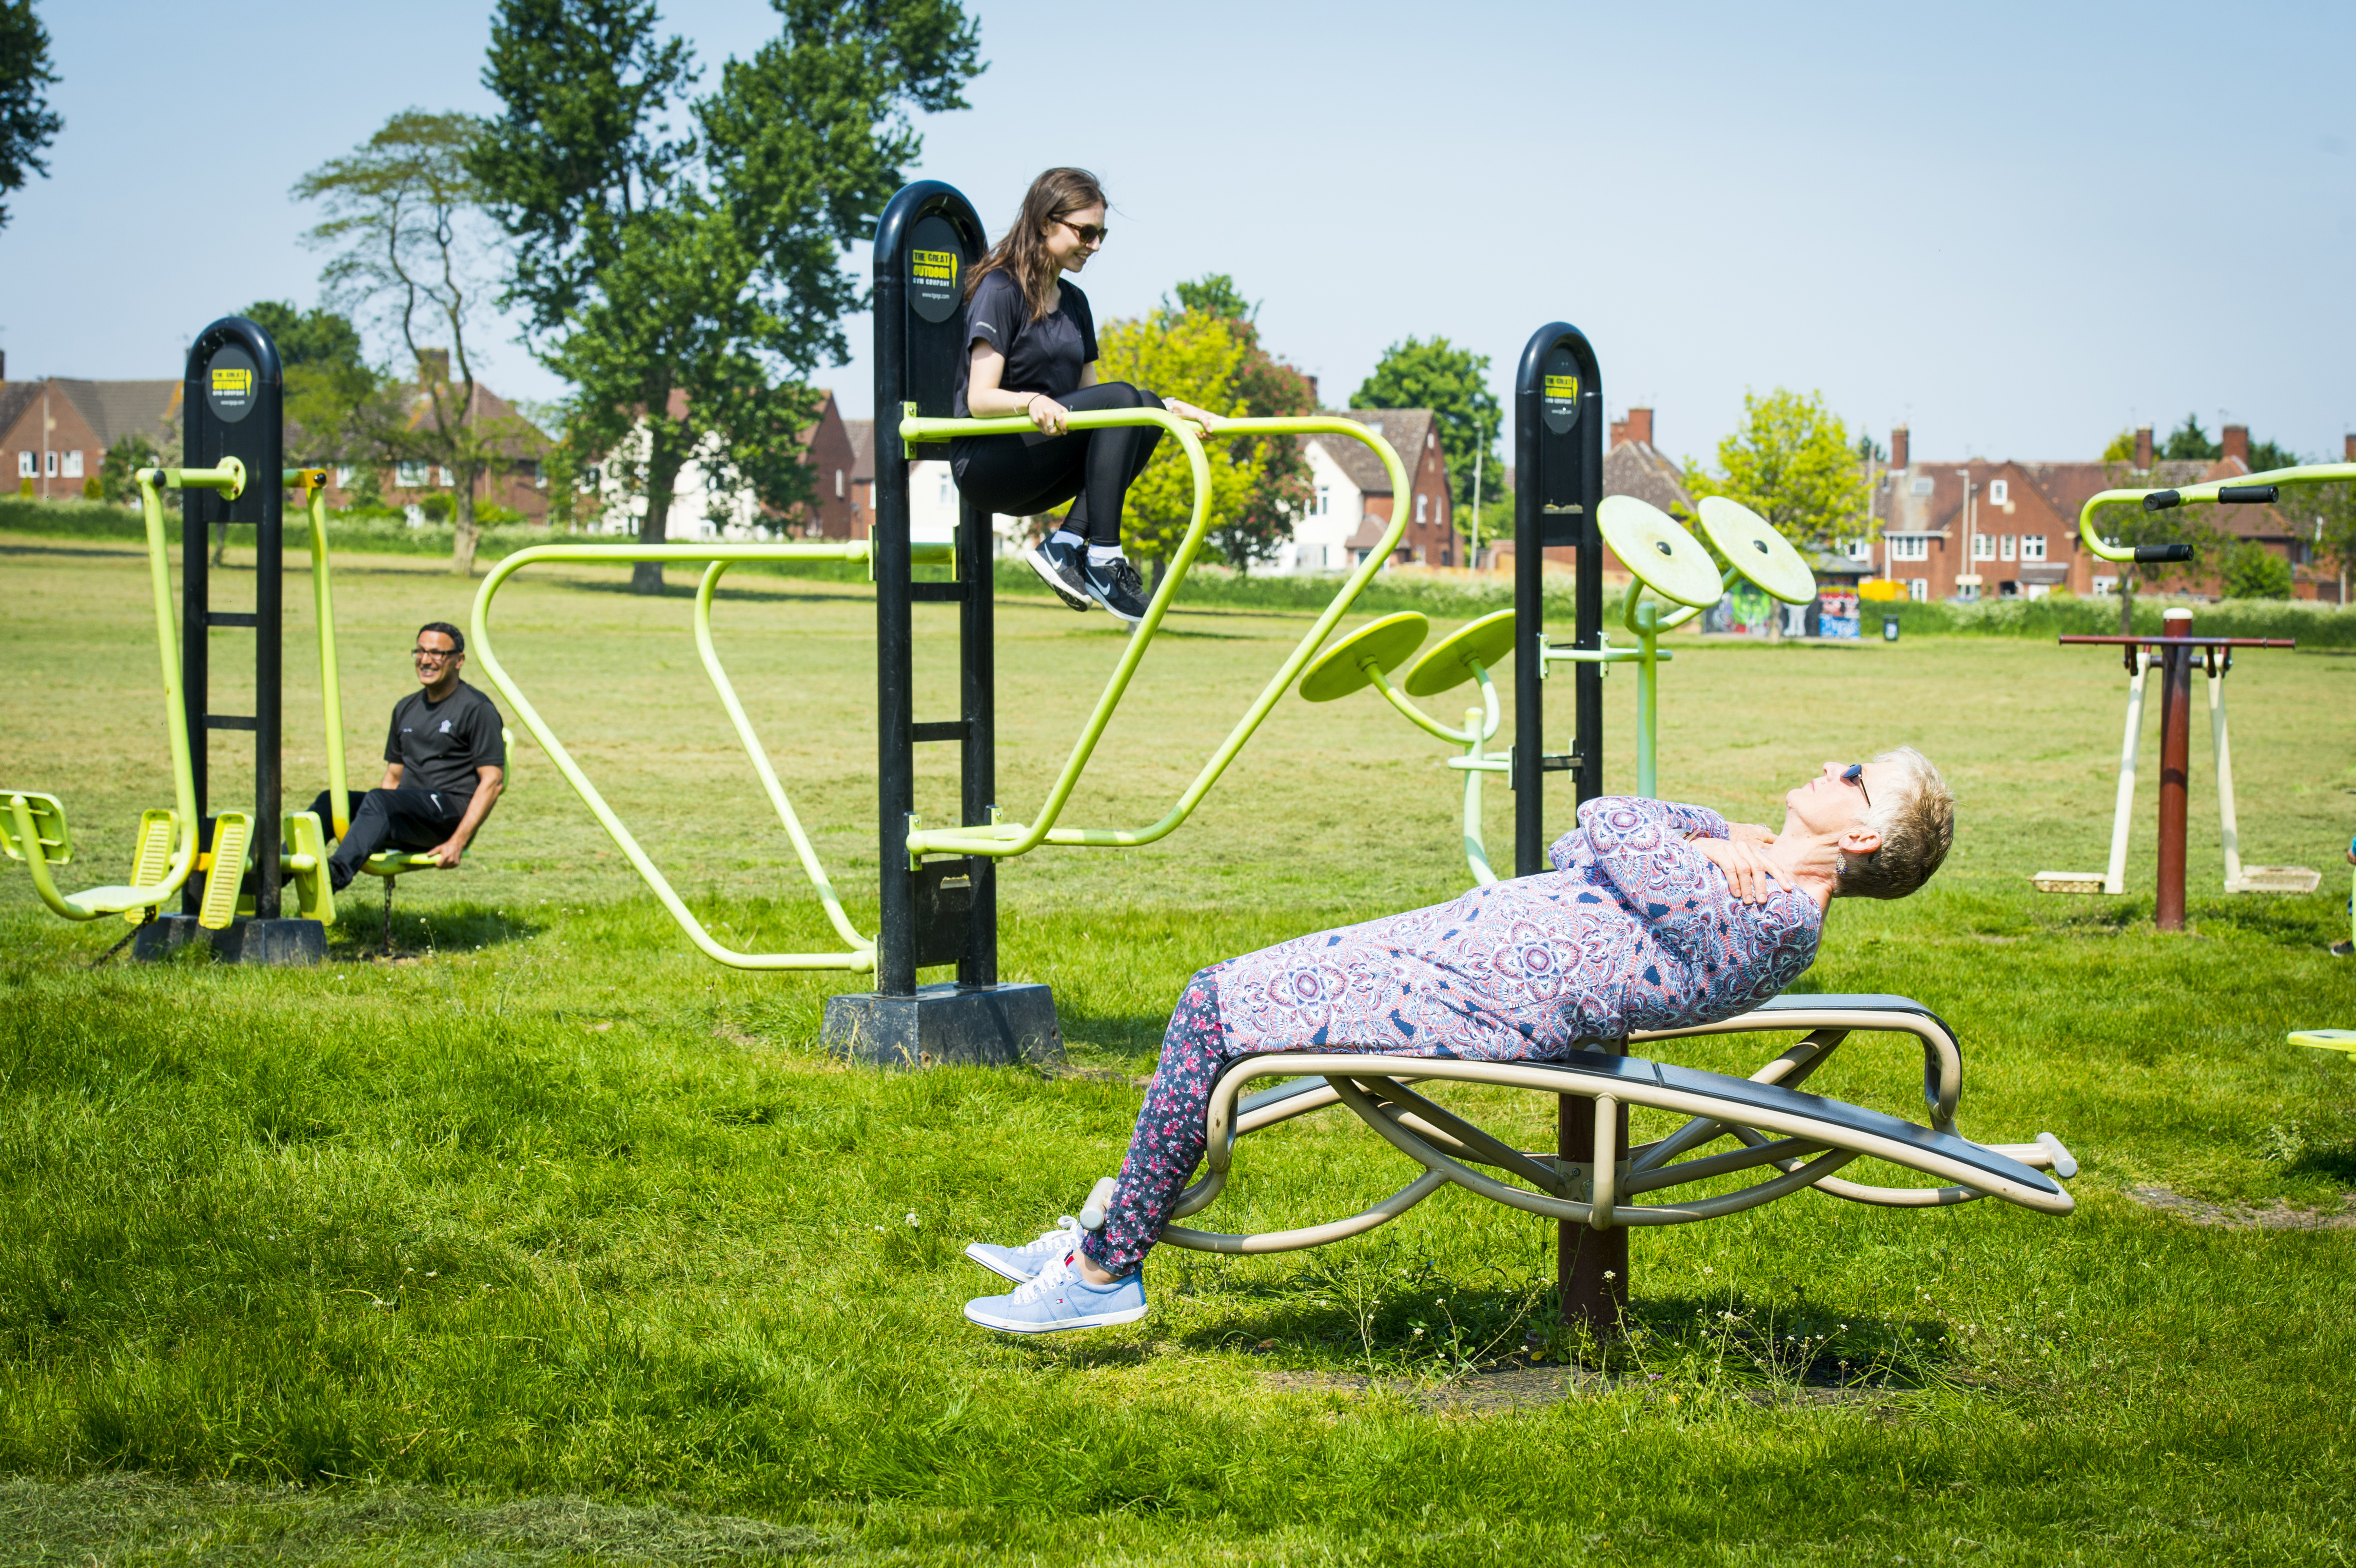 Lady using outdoor gym